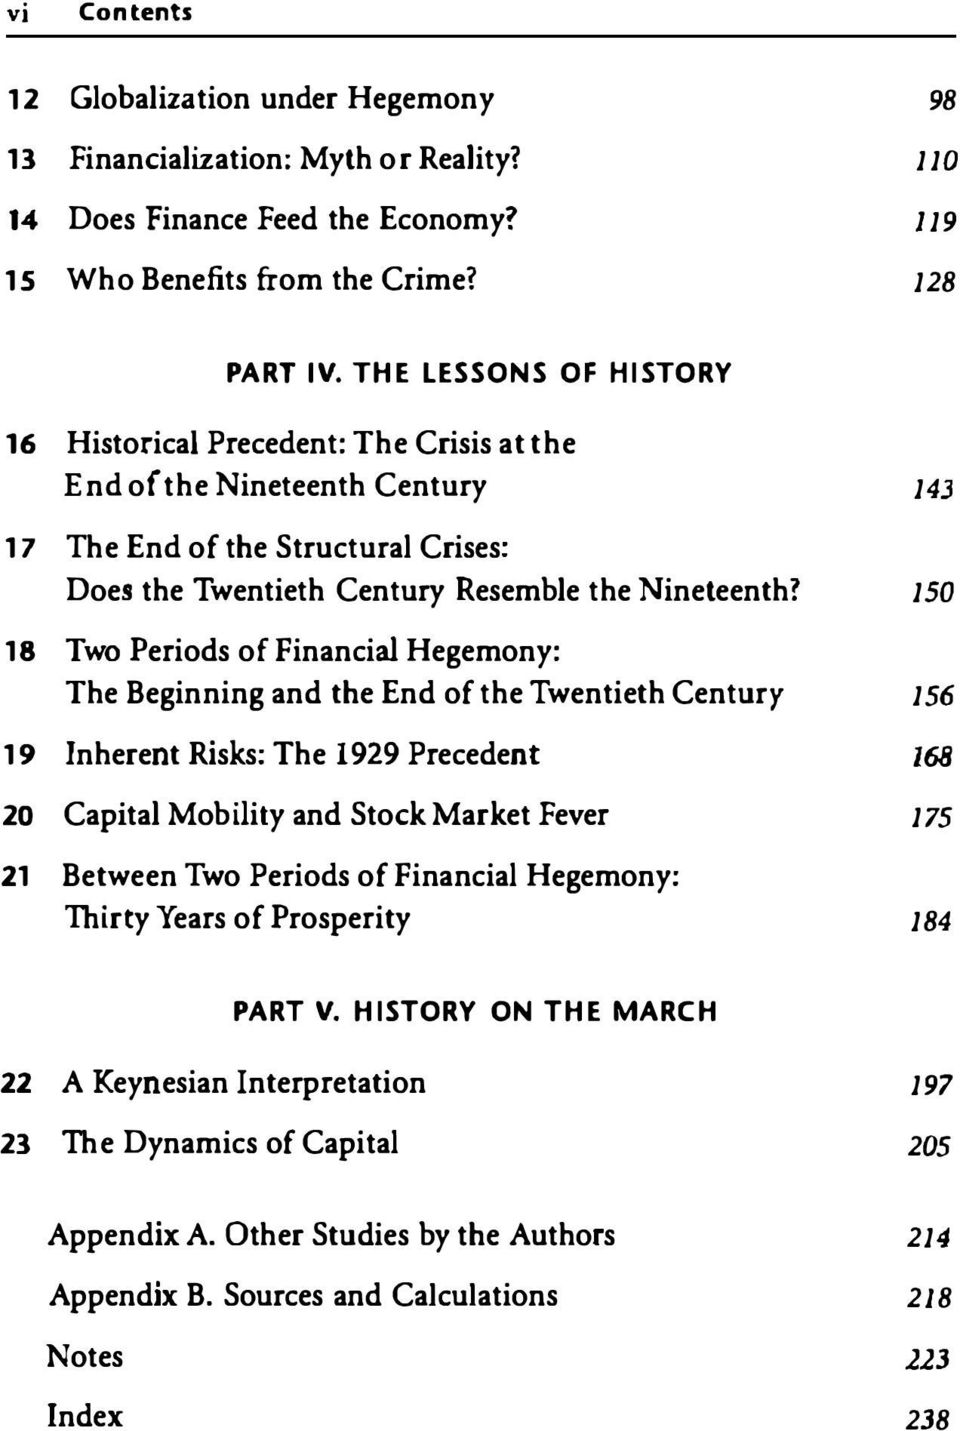 150 18 Two Periods of Financial Hegemony: The Beginning and the End of the Twentieth Century 156 19 Inherent Risks: The 1929 Precedent 168 20 Capital Mobility and Stock Market Fever 175 21 Between